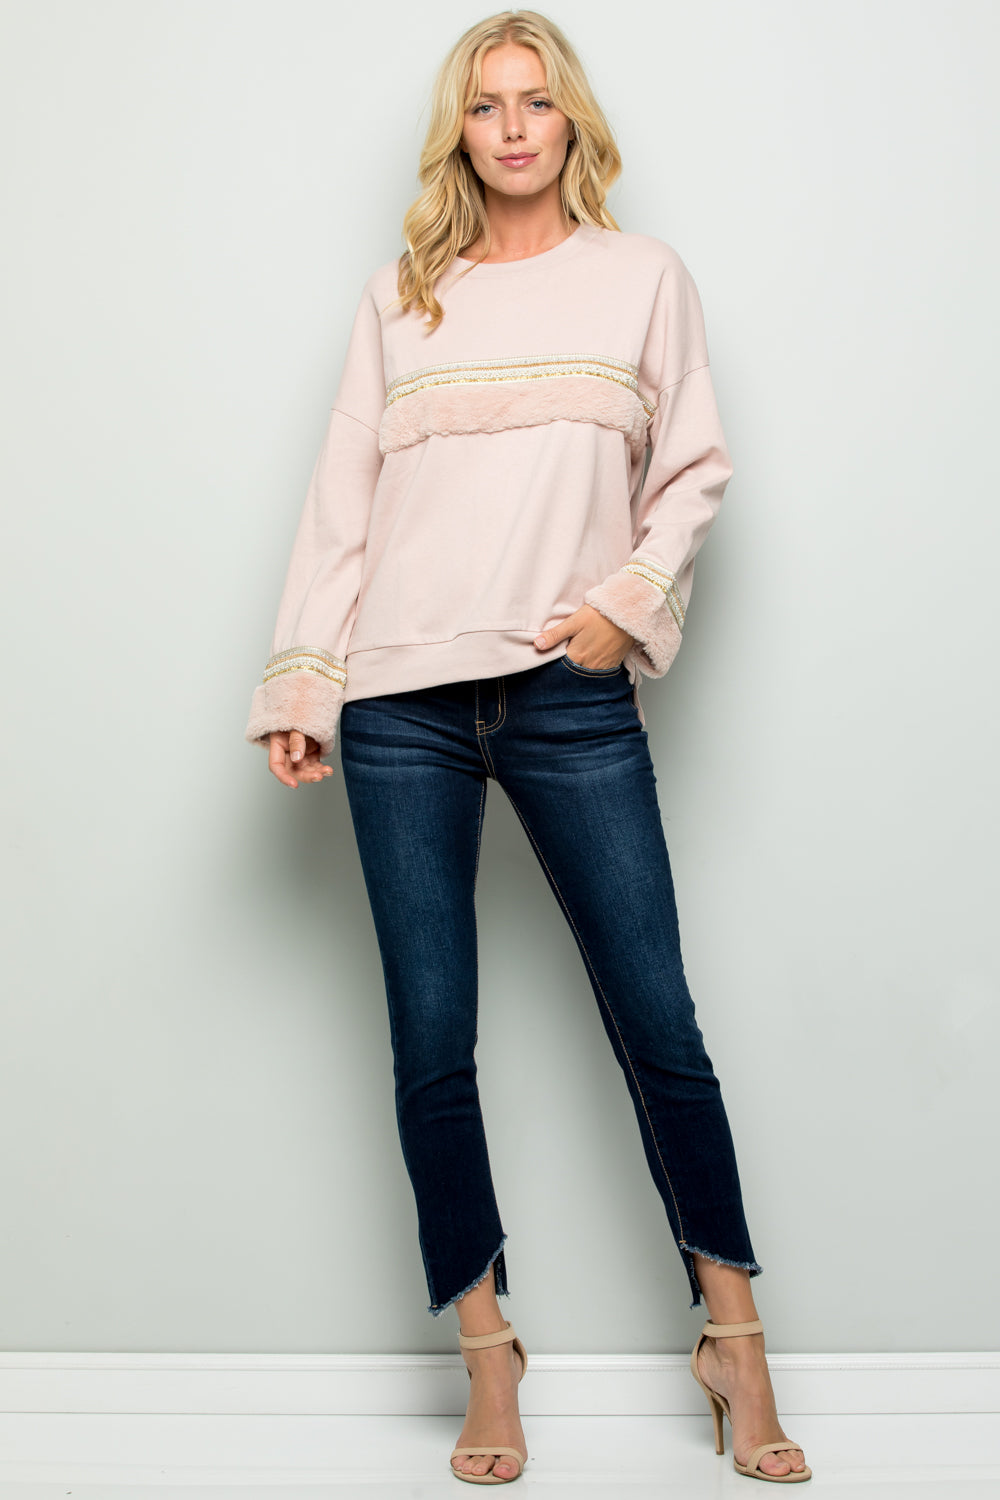 T2711 Faux Fur and Beads Trim Pullover Top